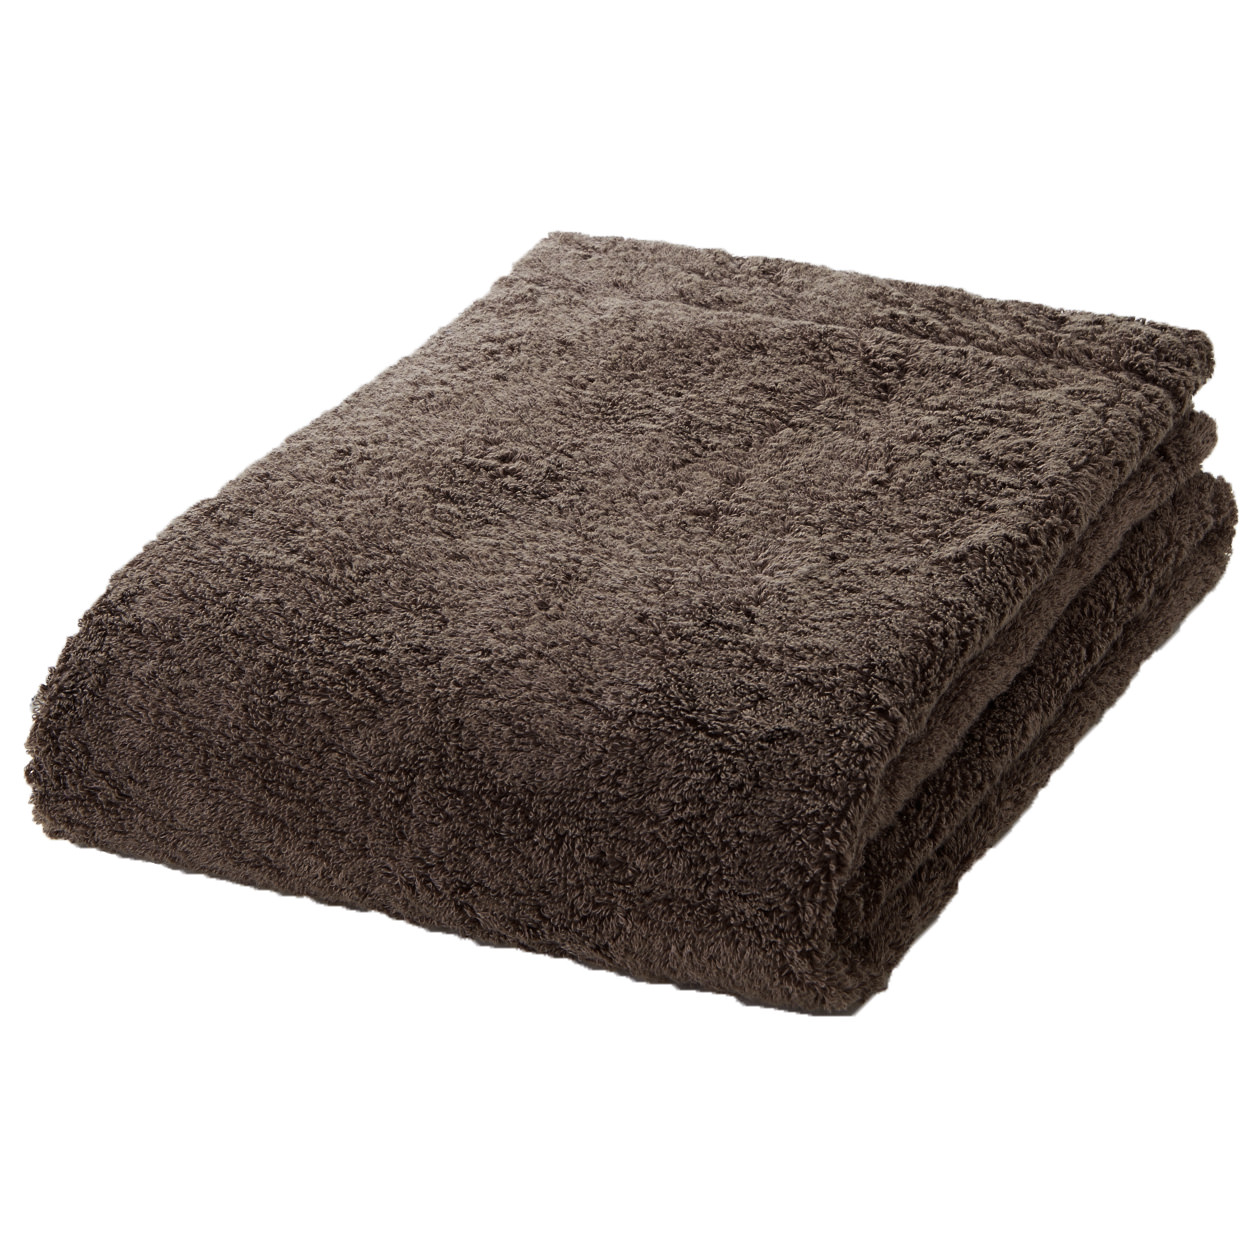 brown medium Bath towel